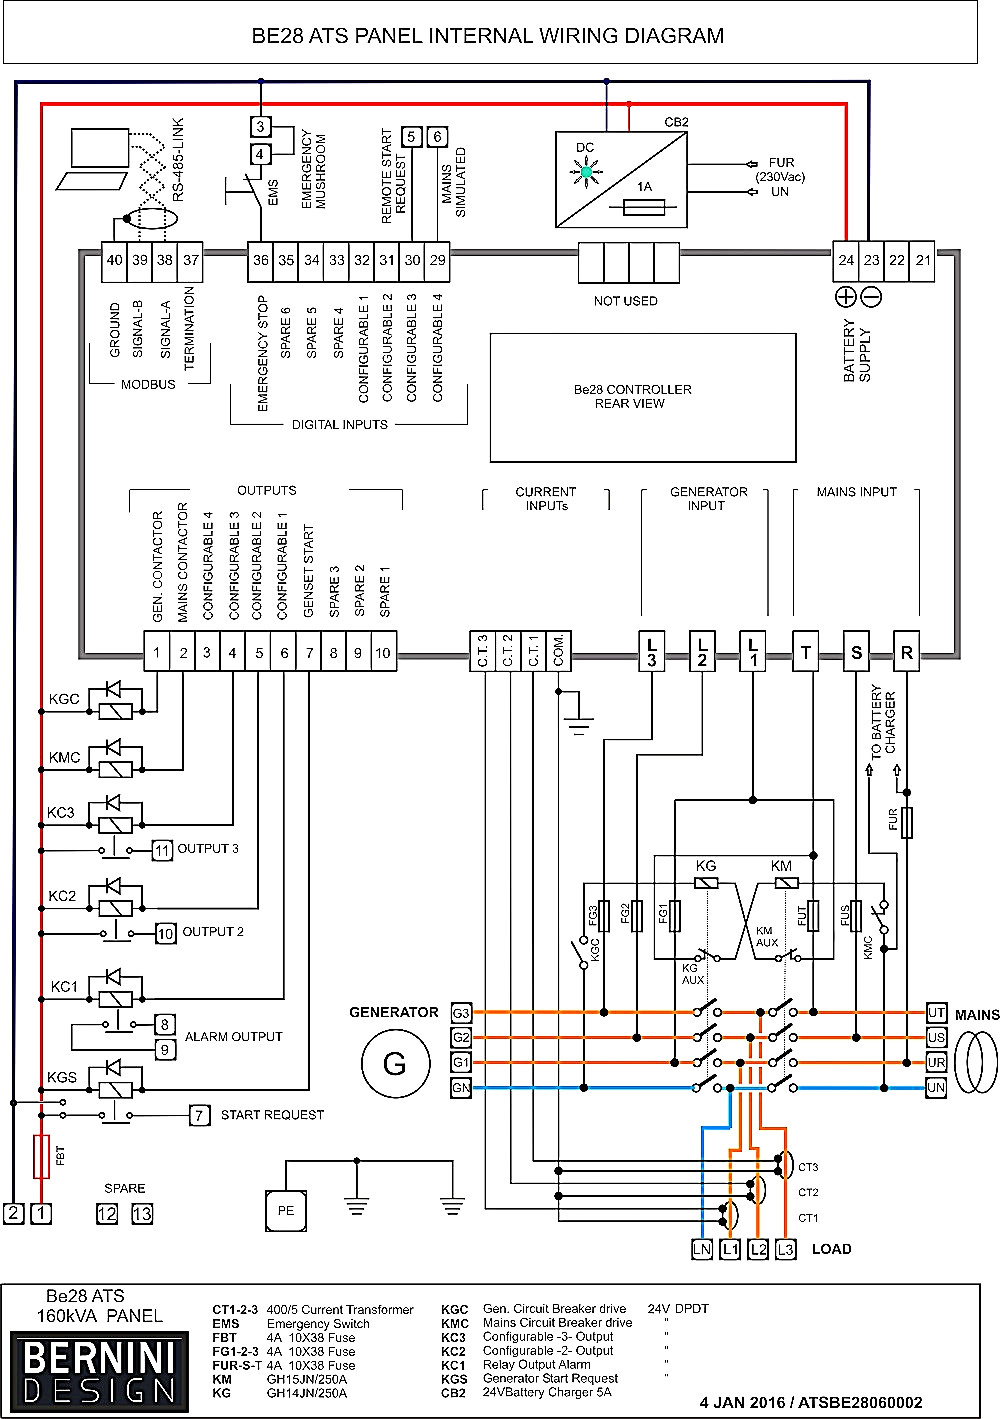 Diagram Generac 6333 Wiring Diagram Full Version Hd Quality Wiring Diagram Diagramspurrh Biancorossoeverdure It